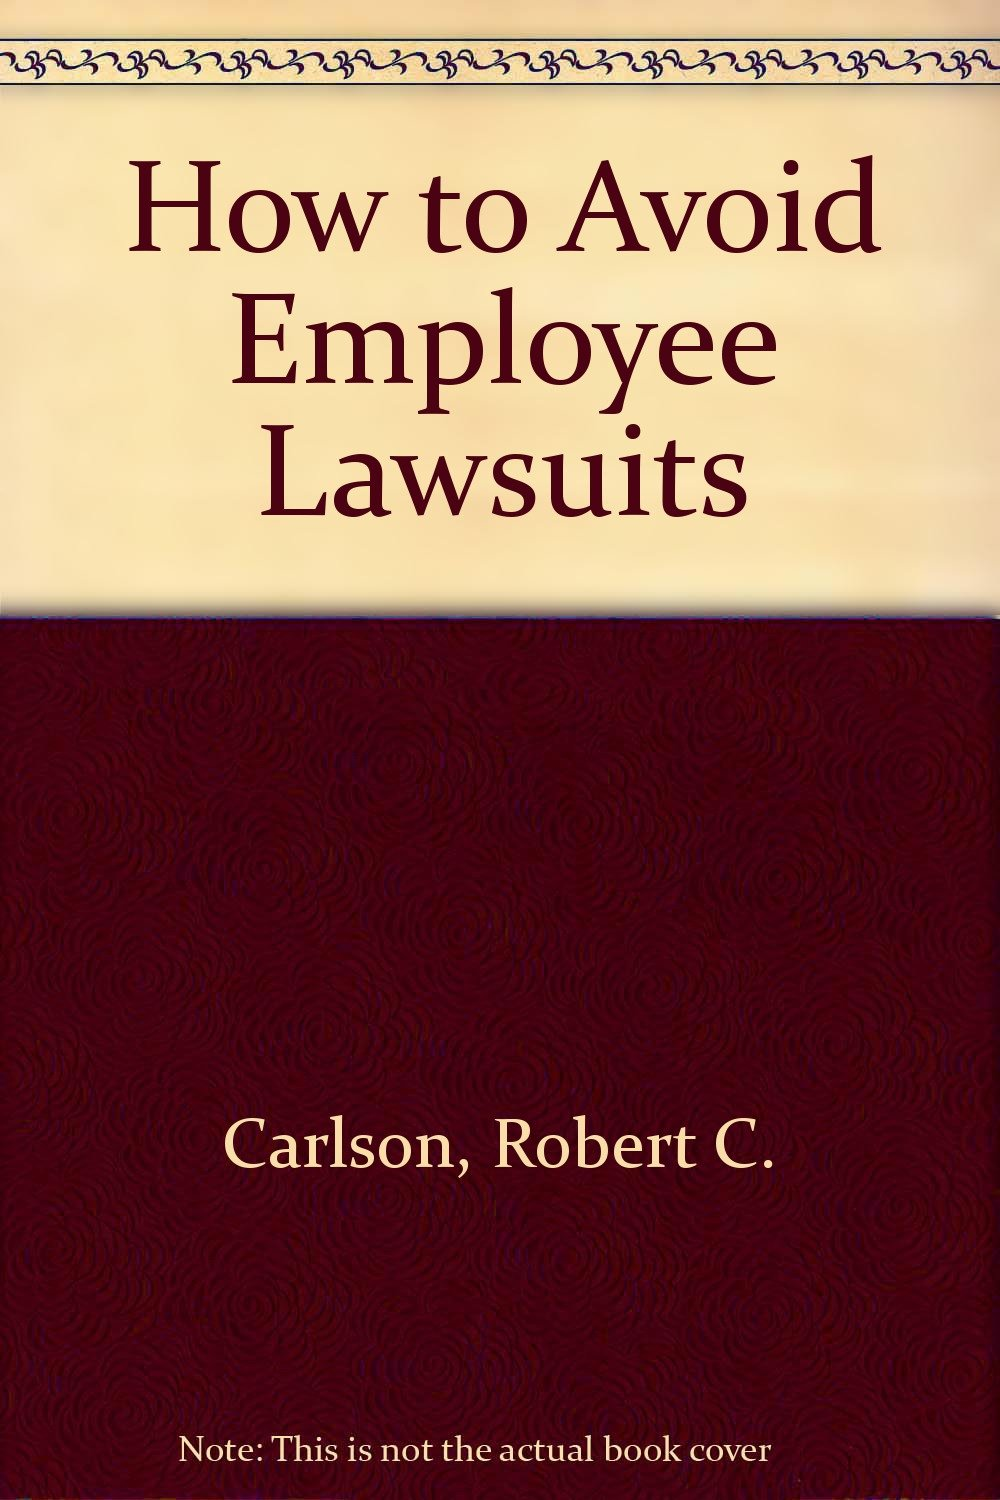 How to Help Avoid Employee Lawsuits